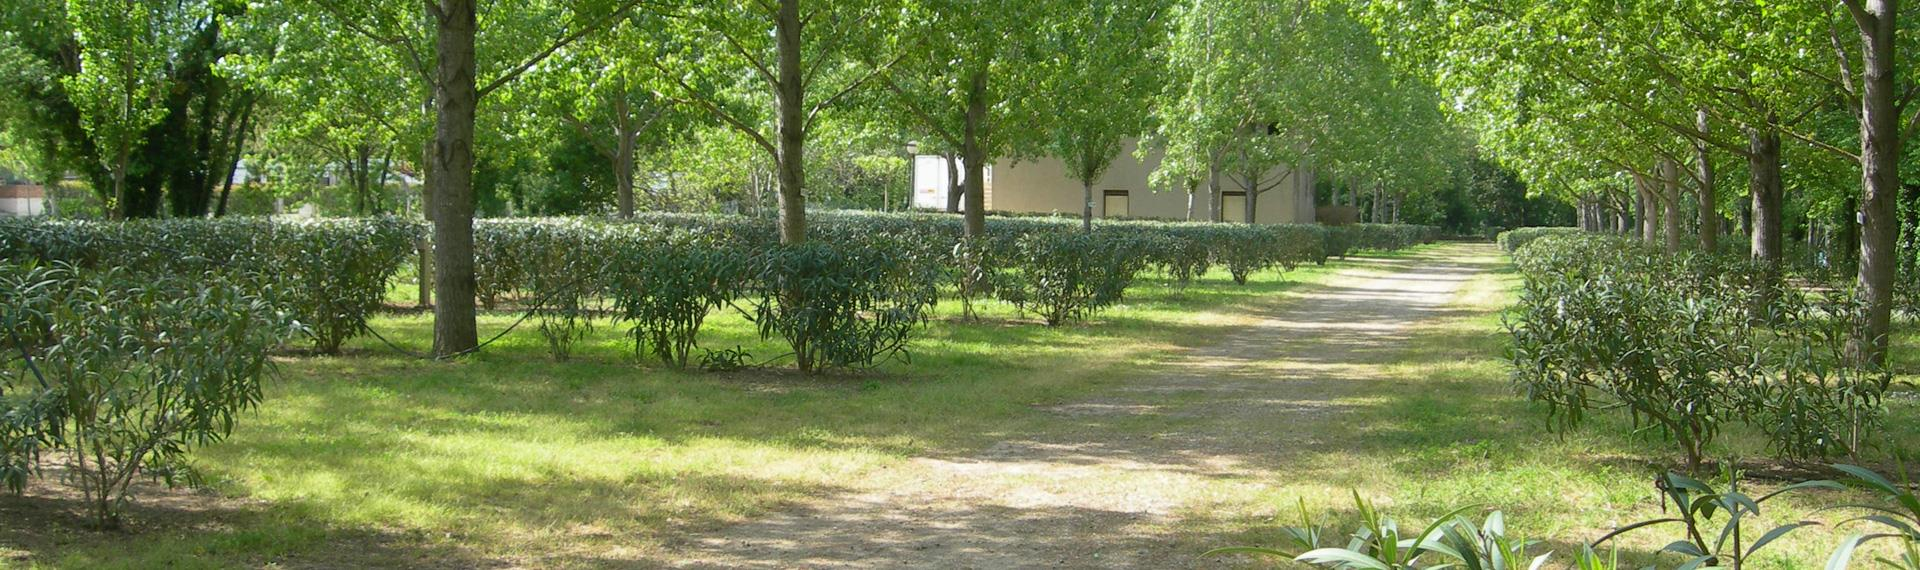 Camping village *** La Gabinelle, camping to Béziers: location rental near Sérignan for tent, camper and caravan